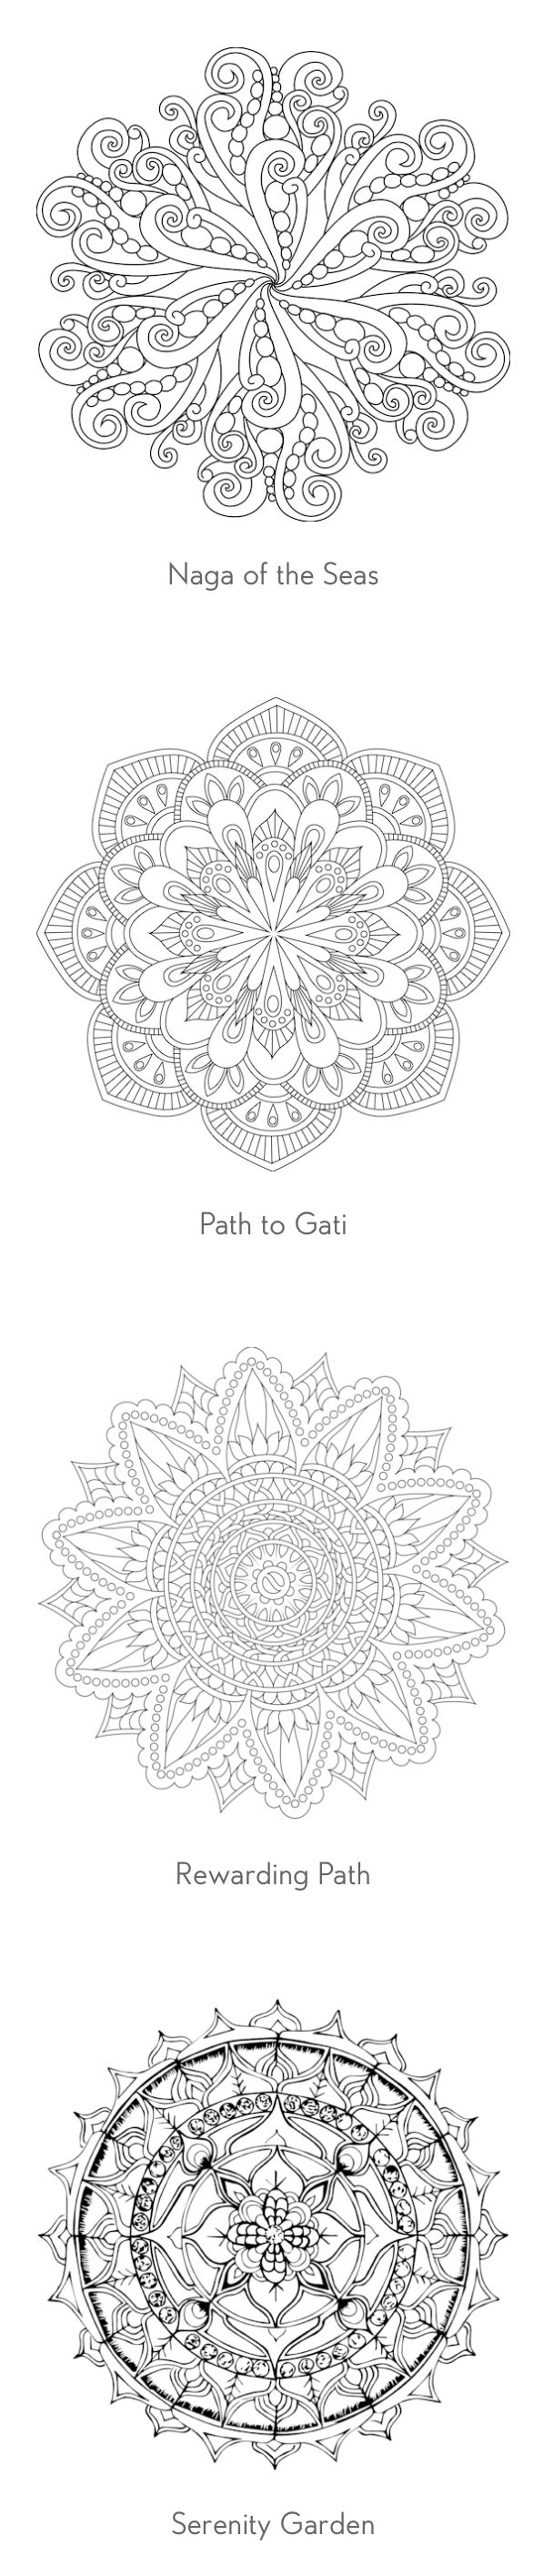 best 20 free adult coloring pages ideas on pinterest adult coloring pages adult coloring and free coloring pages